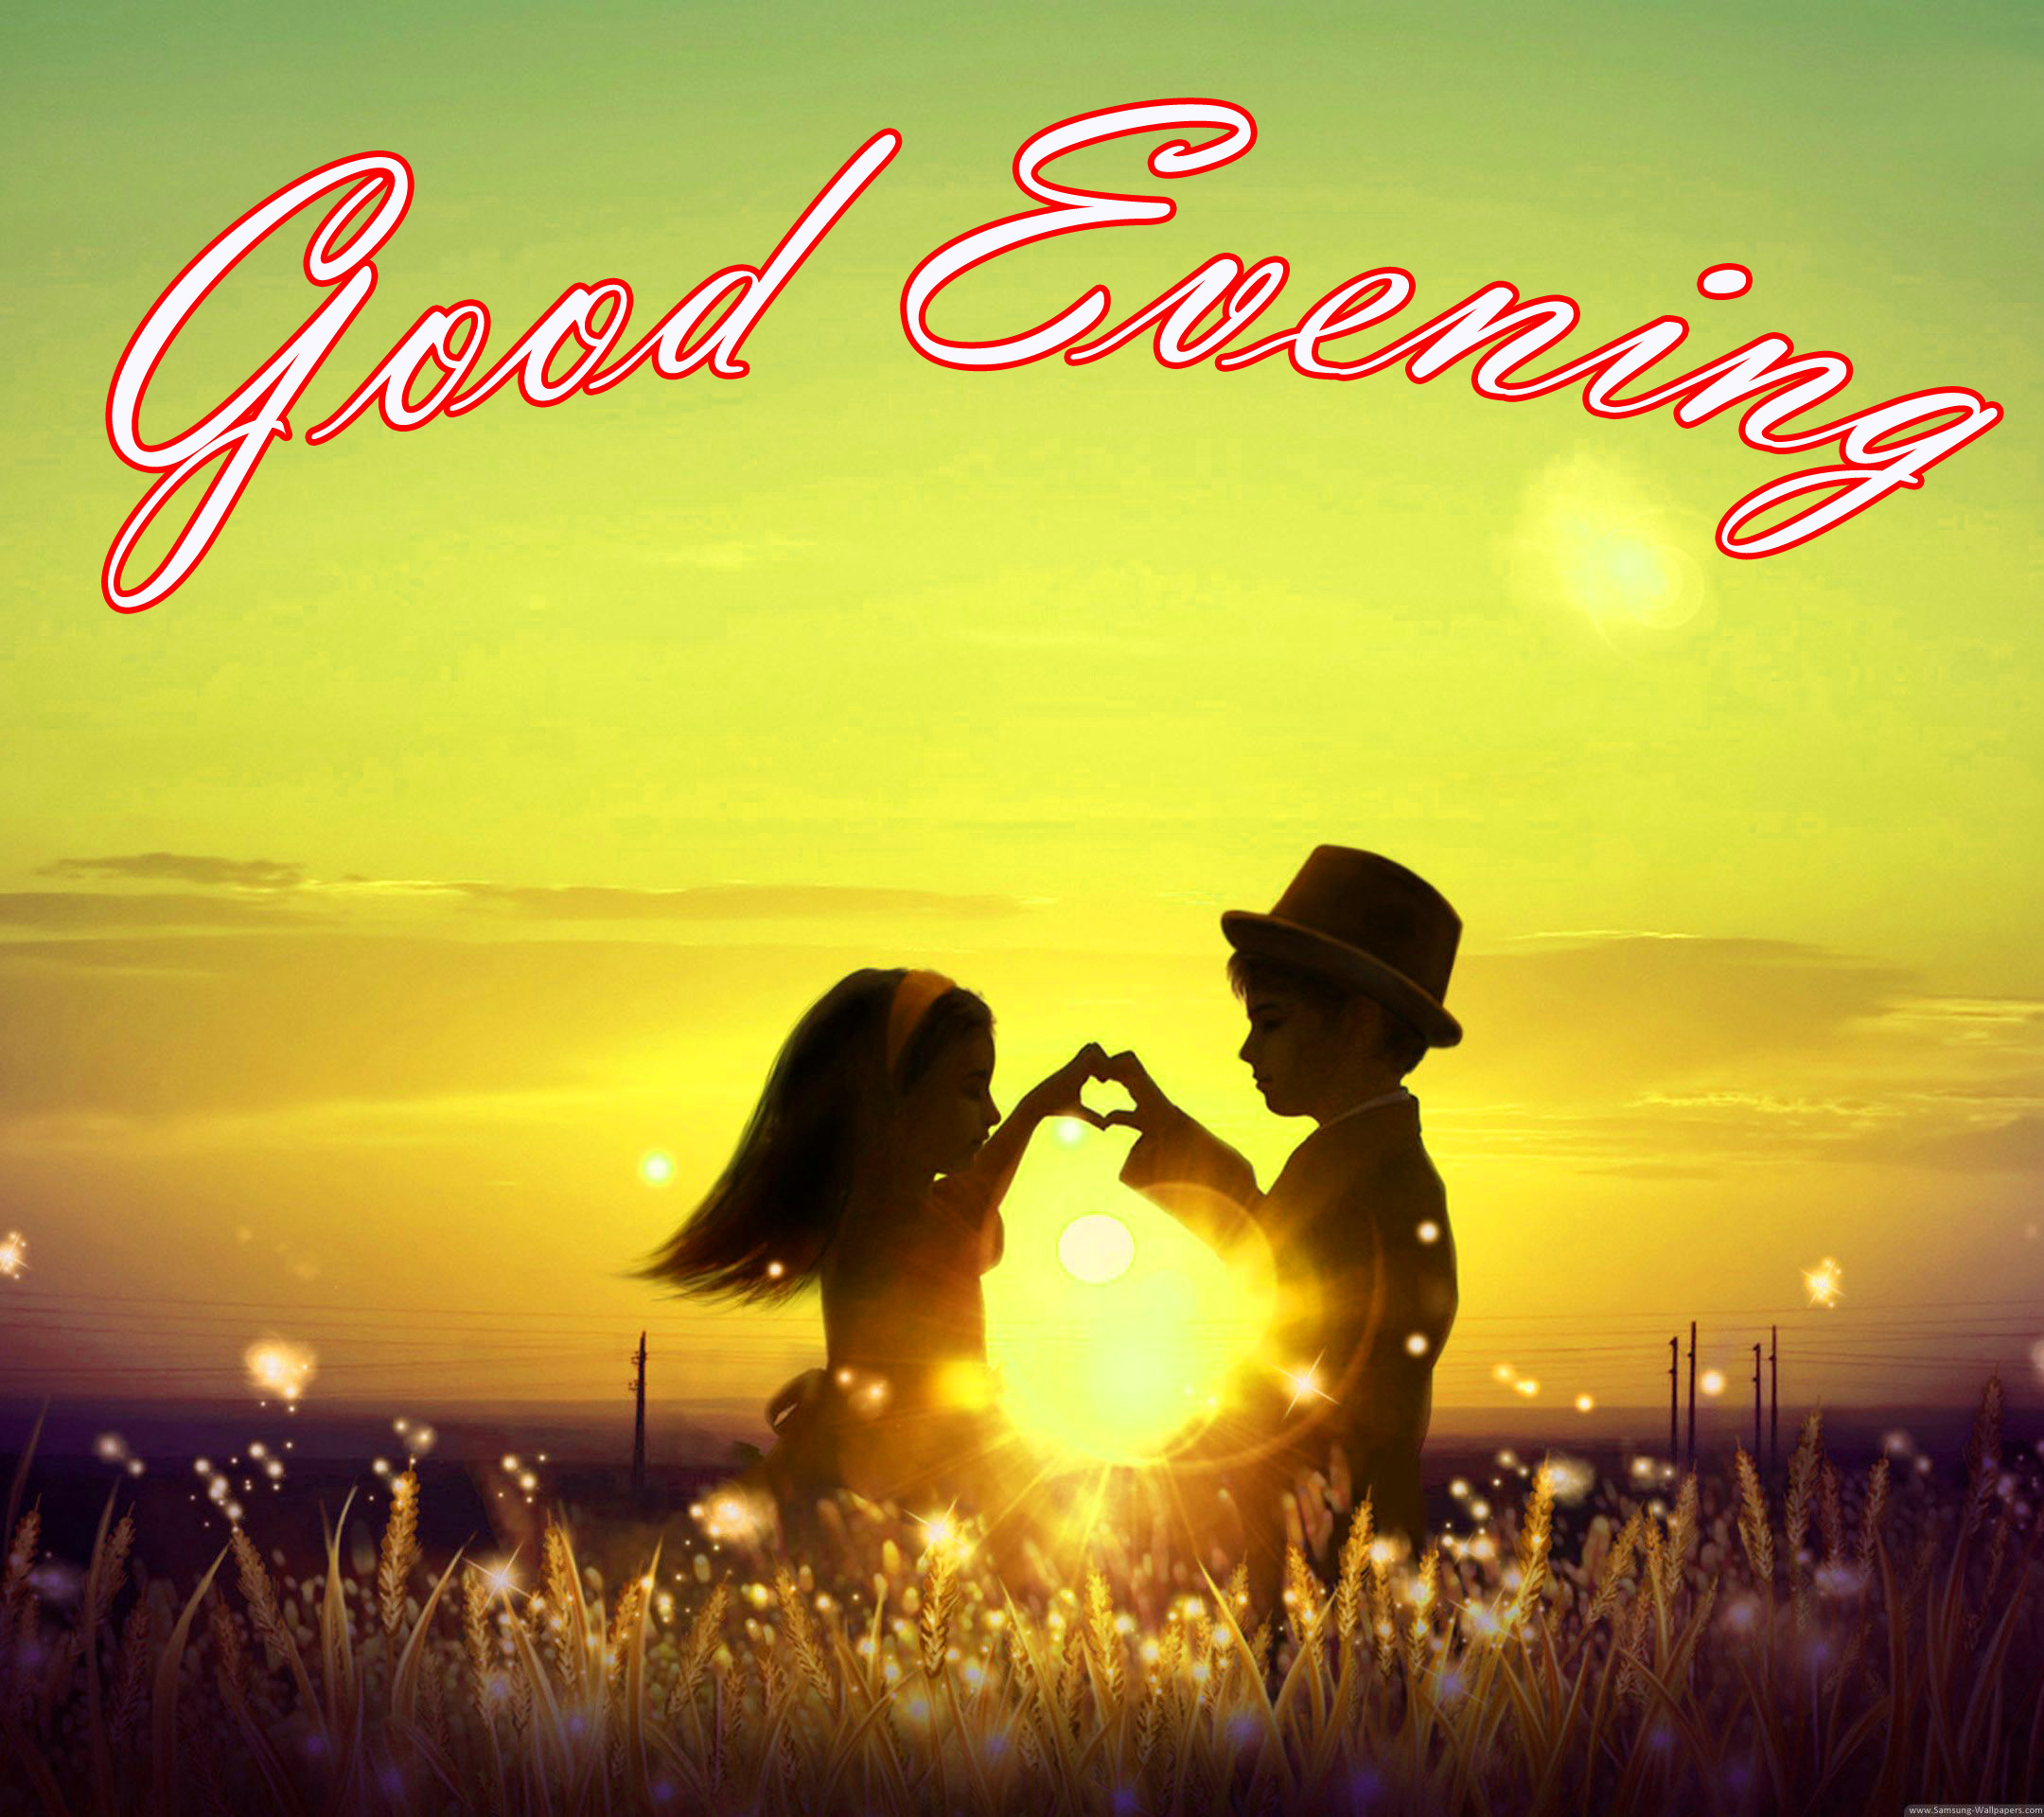 Good Evening Images Pics Wallpaper Pictures Photo Free Download